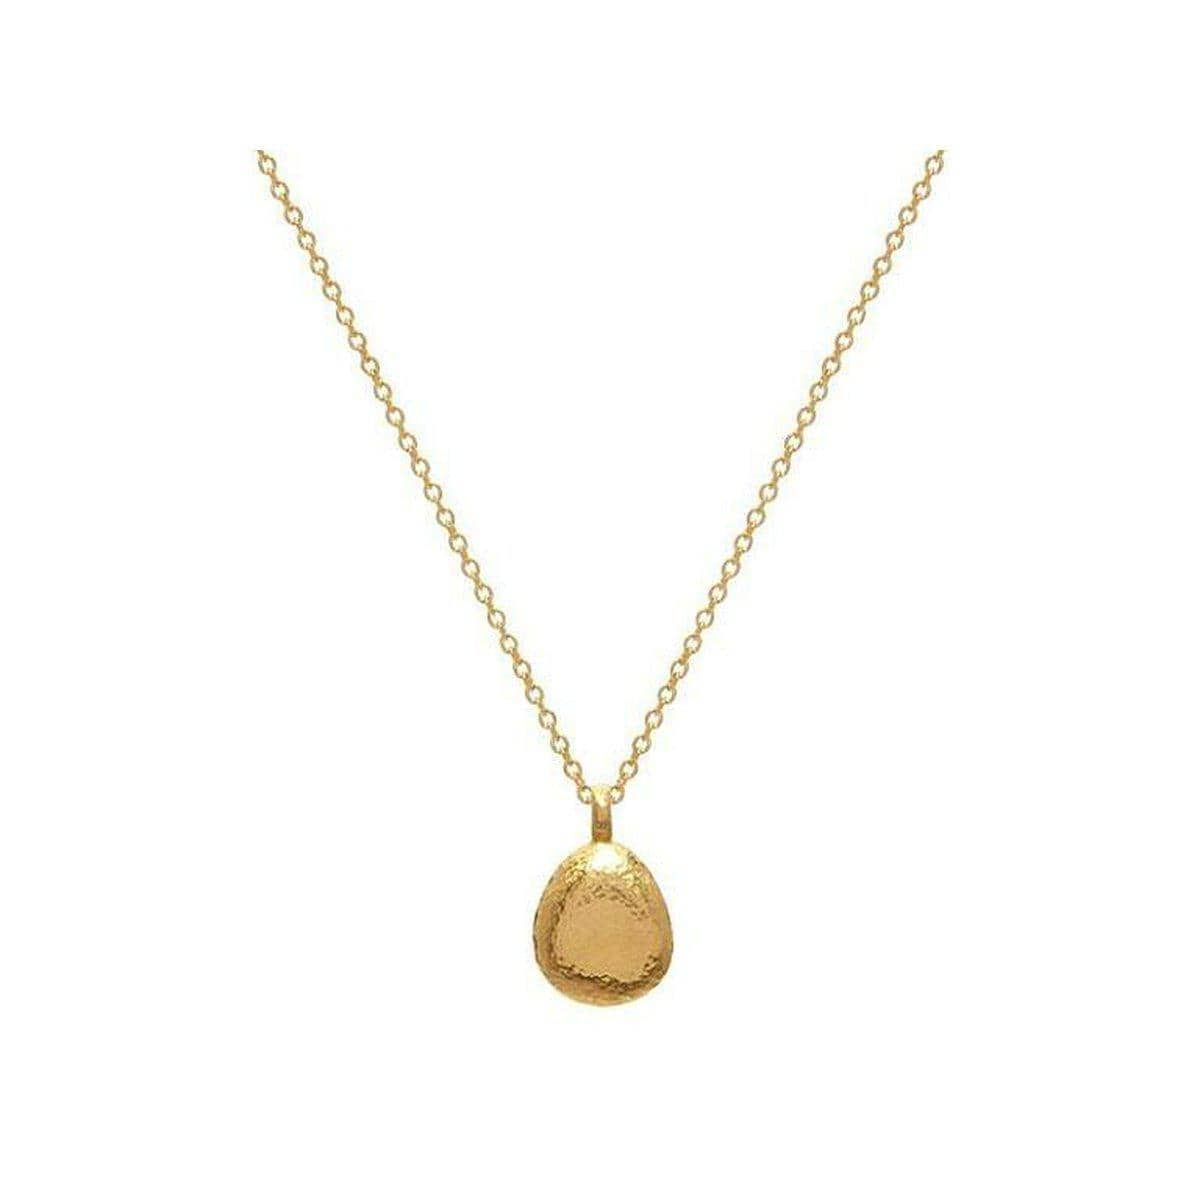 Spell 22K Gold Necklace - CHN-PBLD-16MM-GURHAN-Renee Taylor Gallery